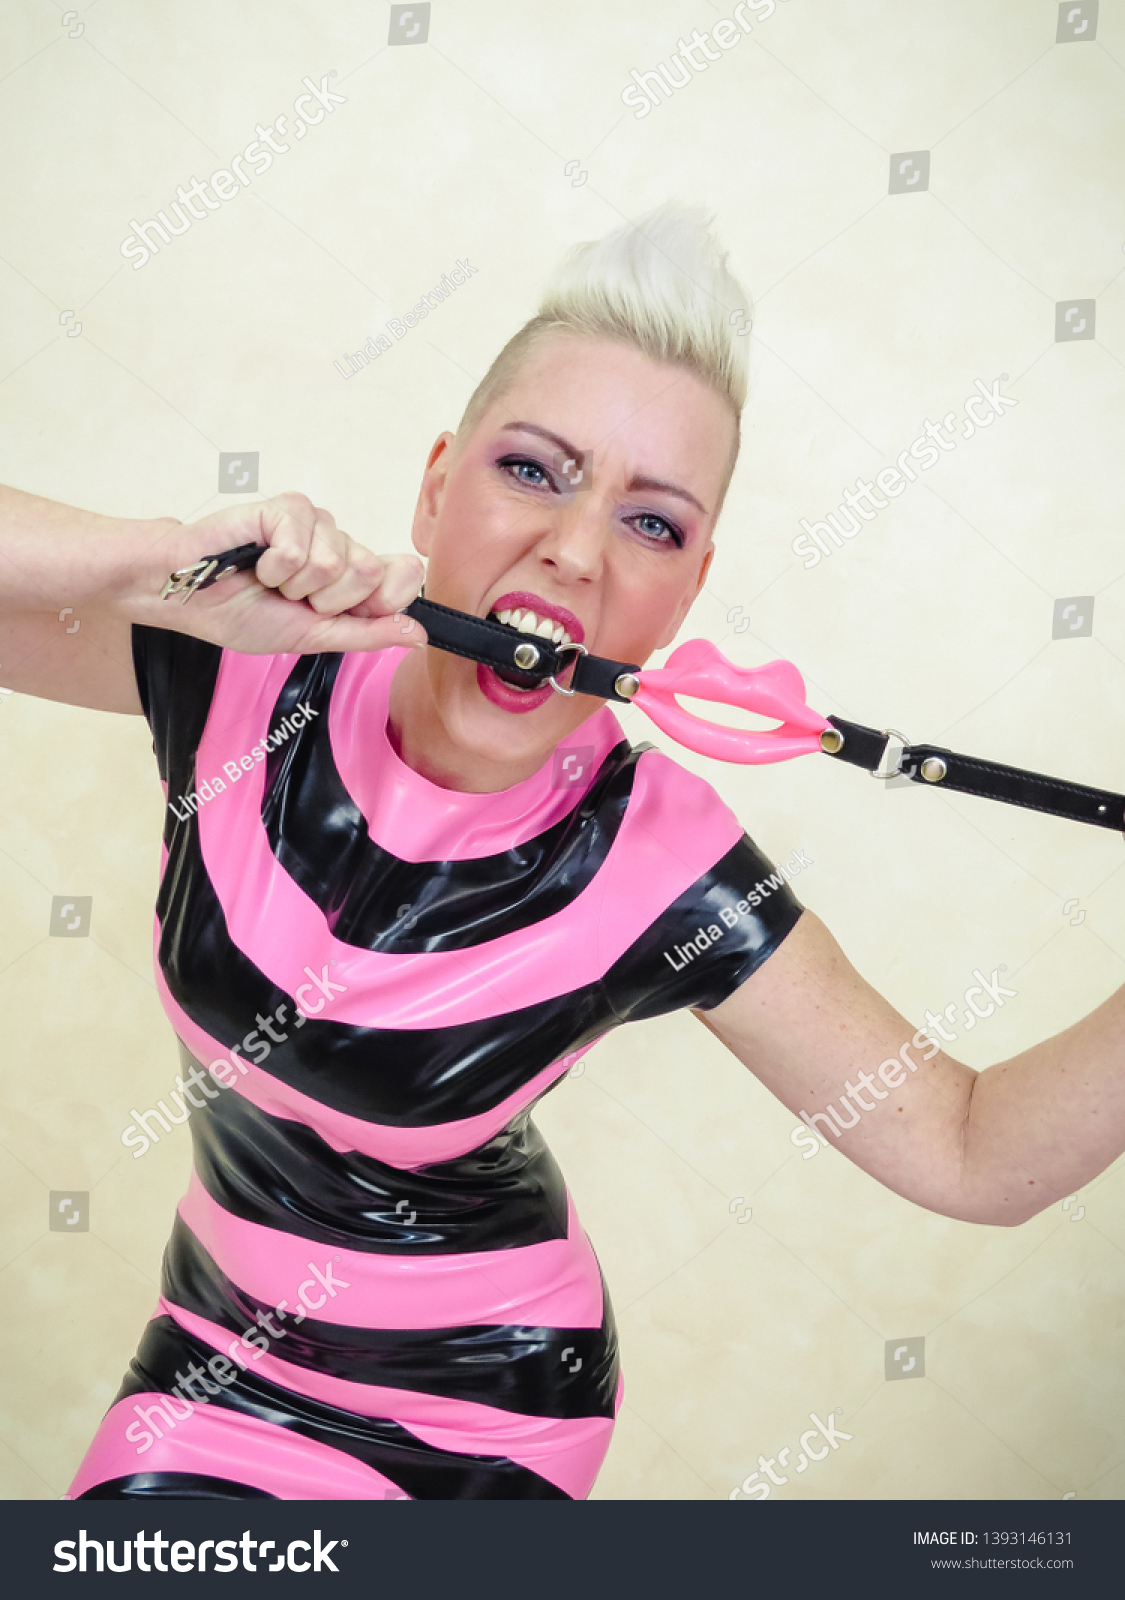 stock-photo-dominant-woman-in-black-and-